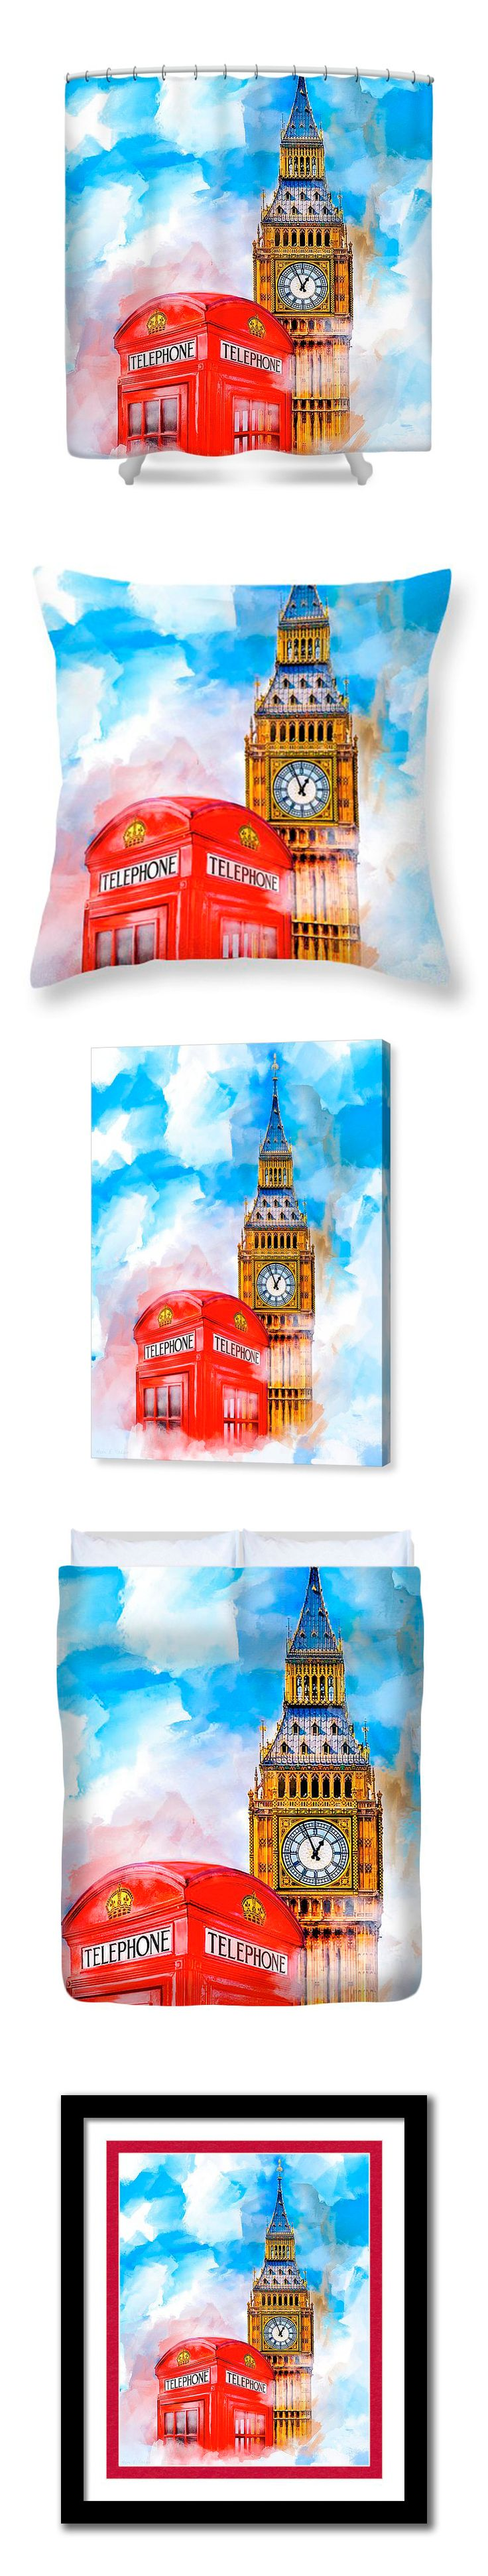 Dreamy London artwork featuring the iconic landmark of Big Ben and a classic Red Telephone Box.